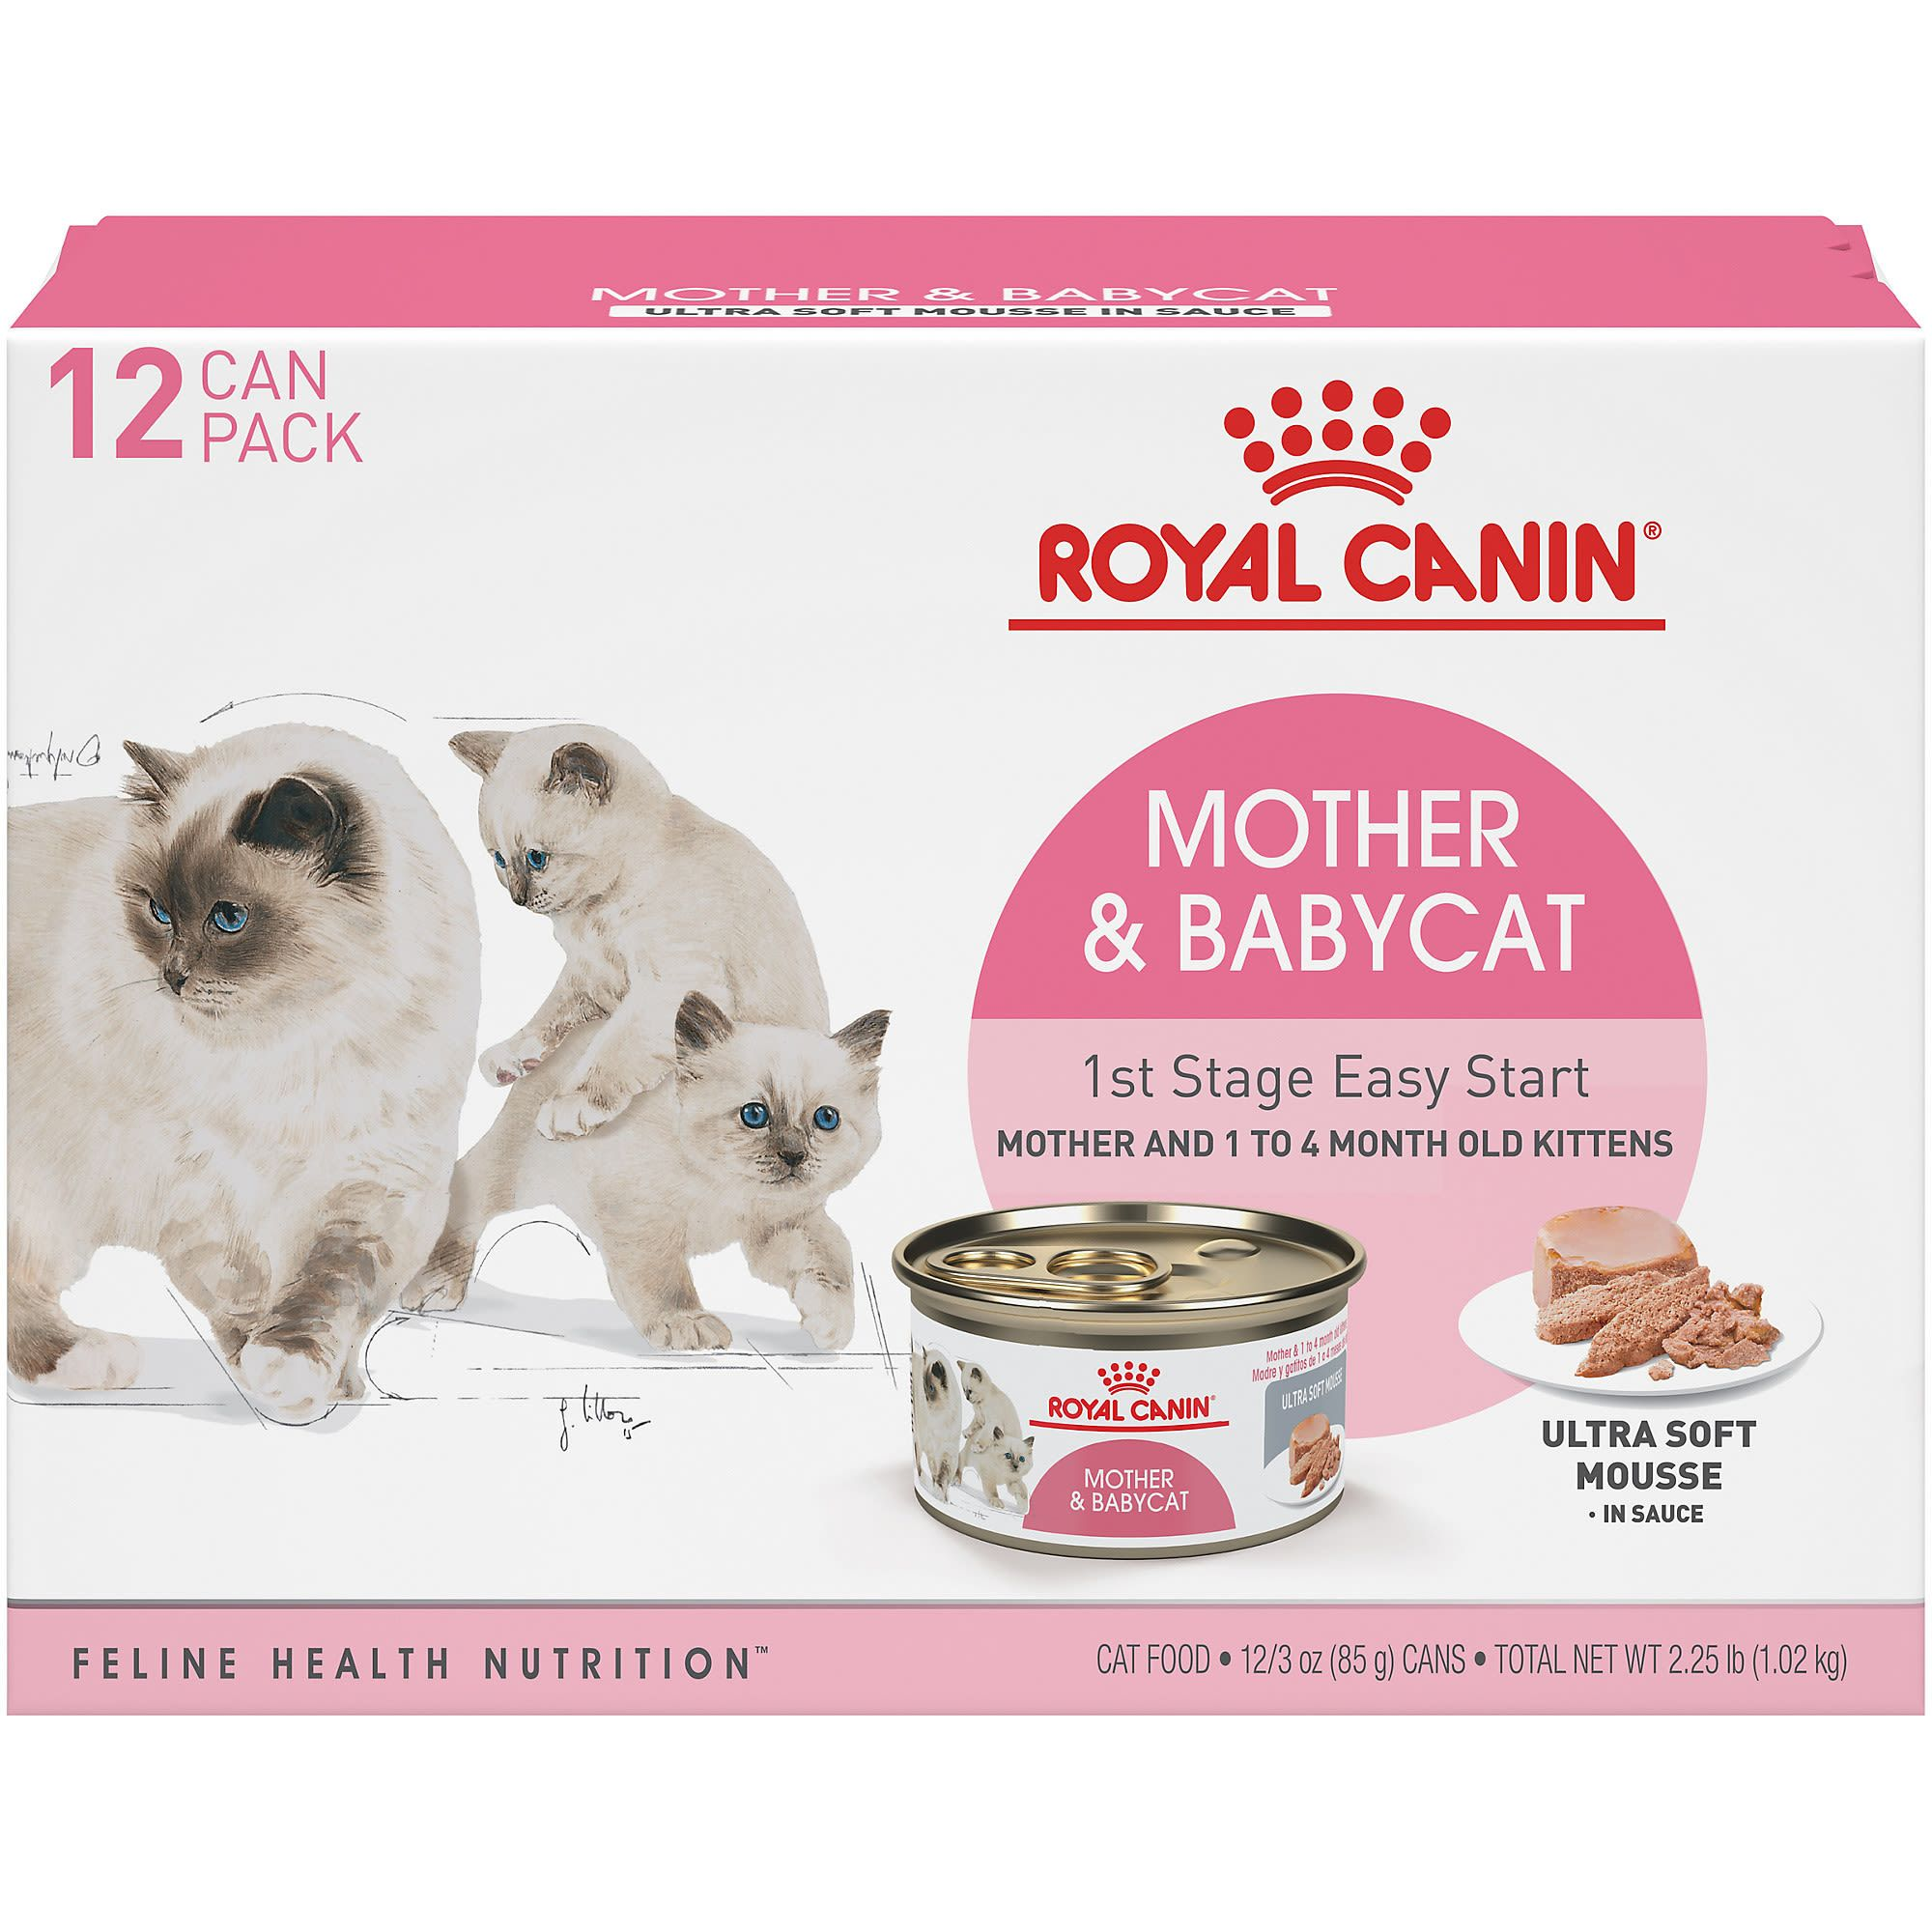 Royal Canin Mother Babycat Ultra Soft Mousse In Sauce Variety